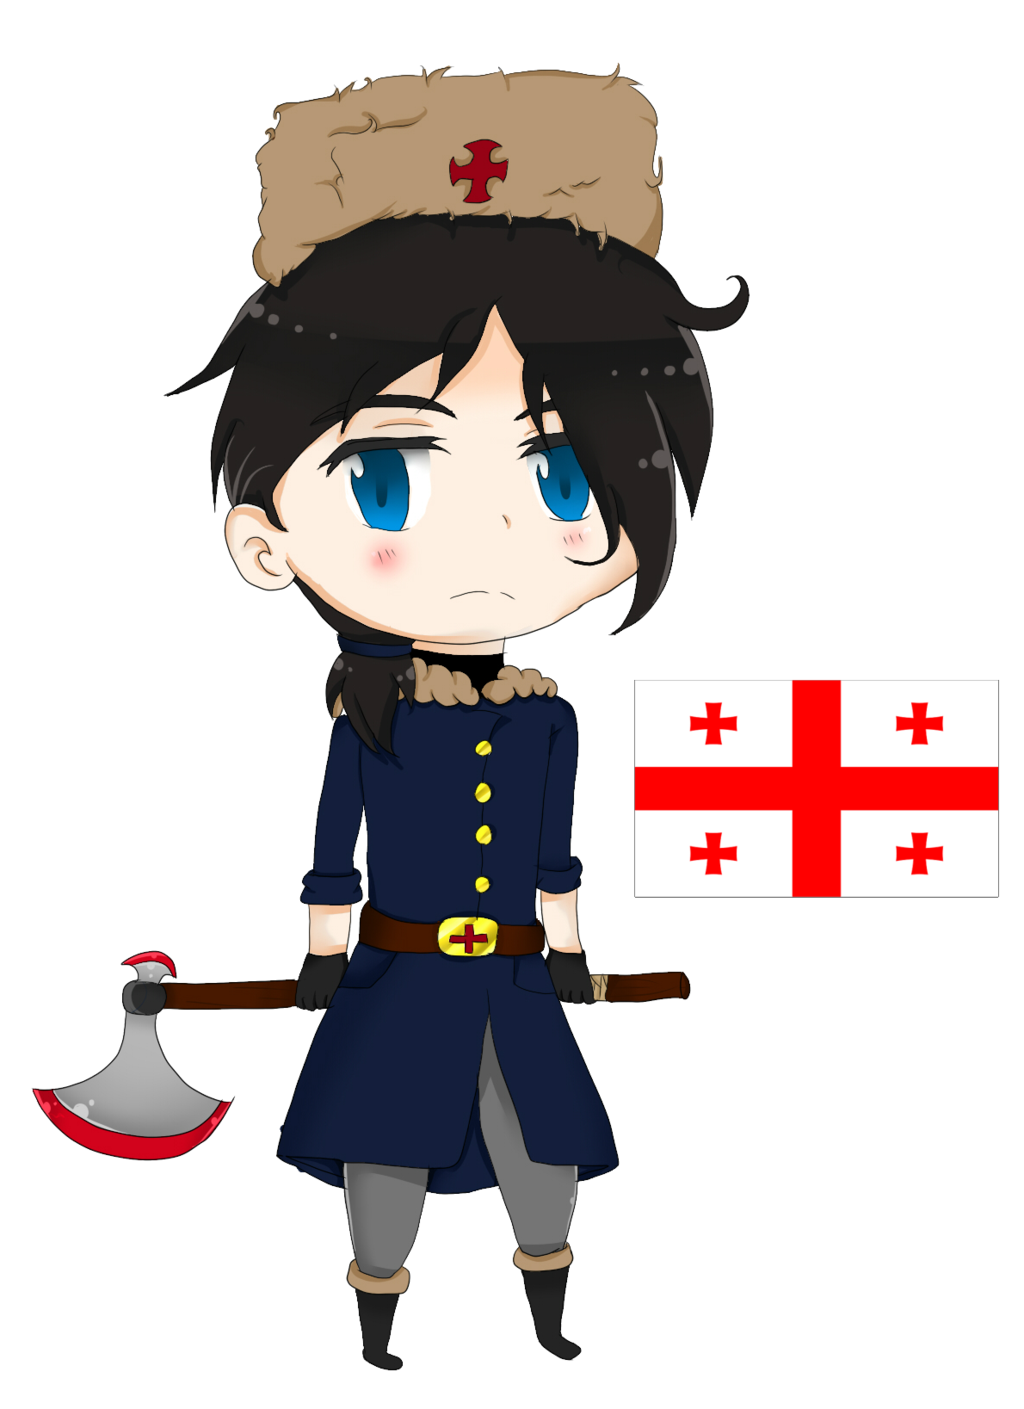 Aph georgia country by. Conflict clipart grudge